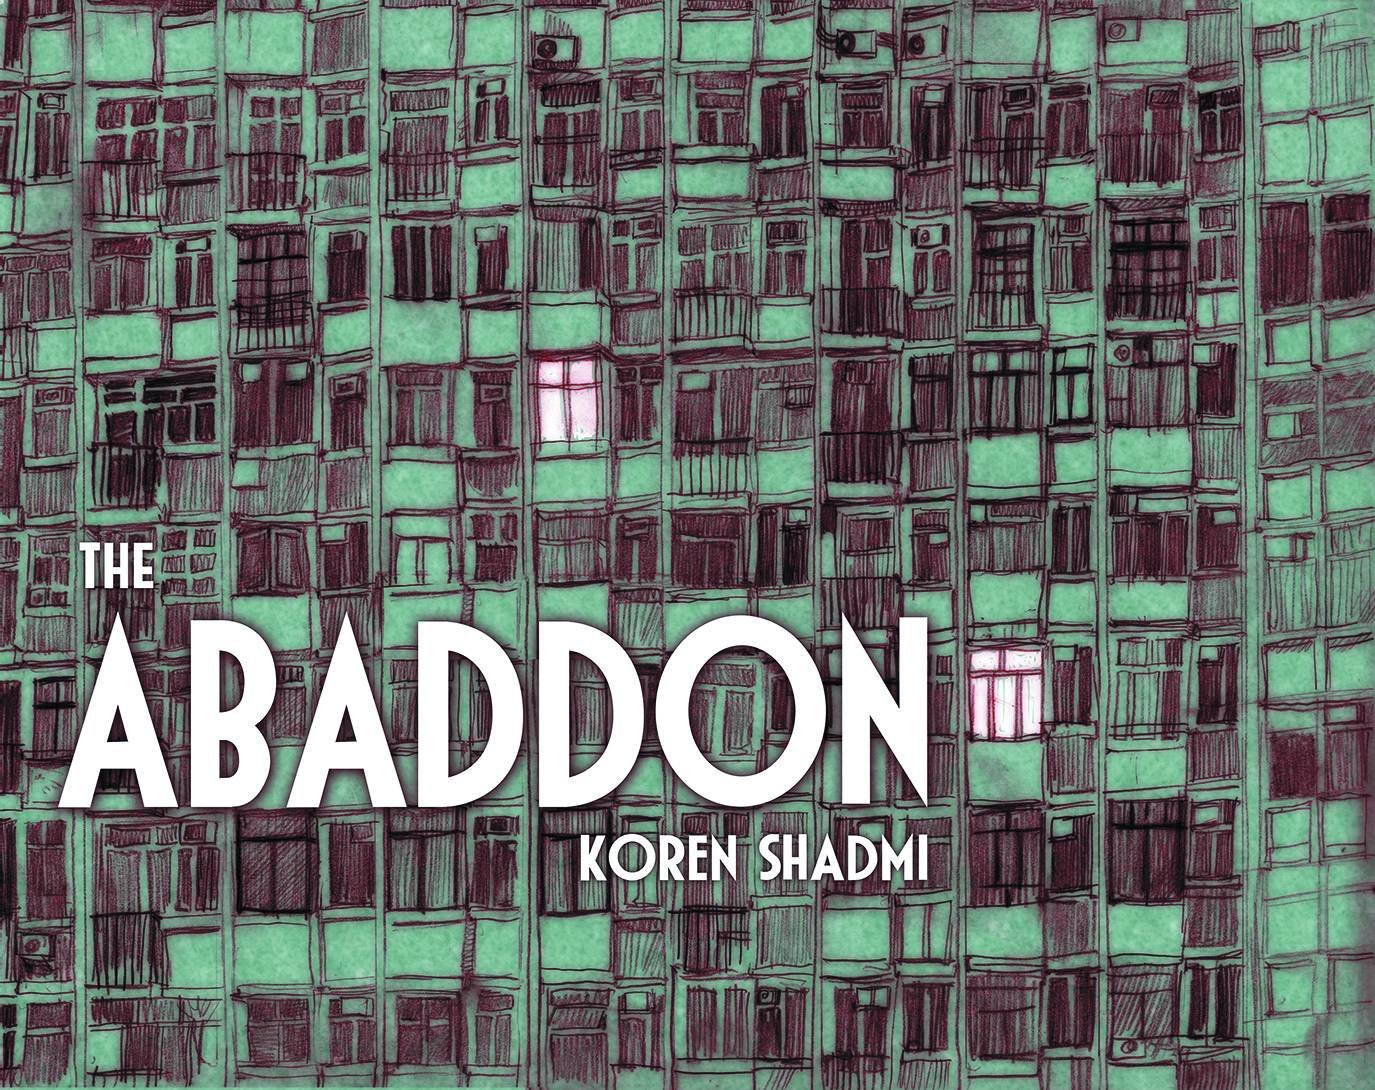 The Abaddon: By Koren Shadmi   A young man finds himself trapped in a bizarre apartment with a group of ill matched roommates. He quickly discovers that his new home doesn't adhere to any rational laws of nature, and poses a strange enigma — a puzzle he needs to solve in order to escape. It's no help that both him and his roommates are missing crucial parts of their memories and identities; he must try and gather the missing pieces as he struggles to find a way out.